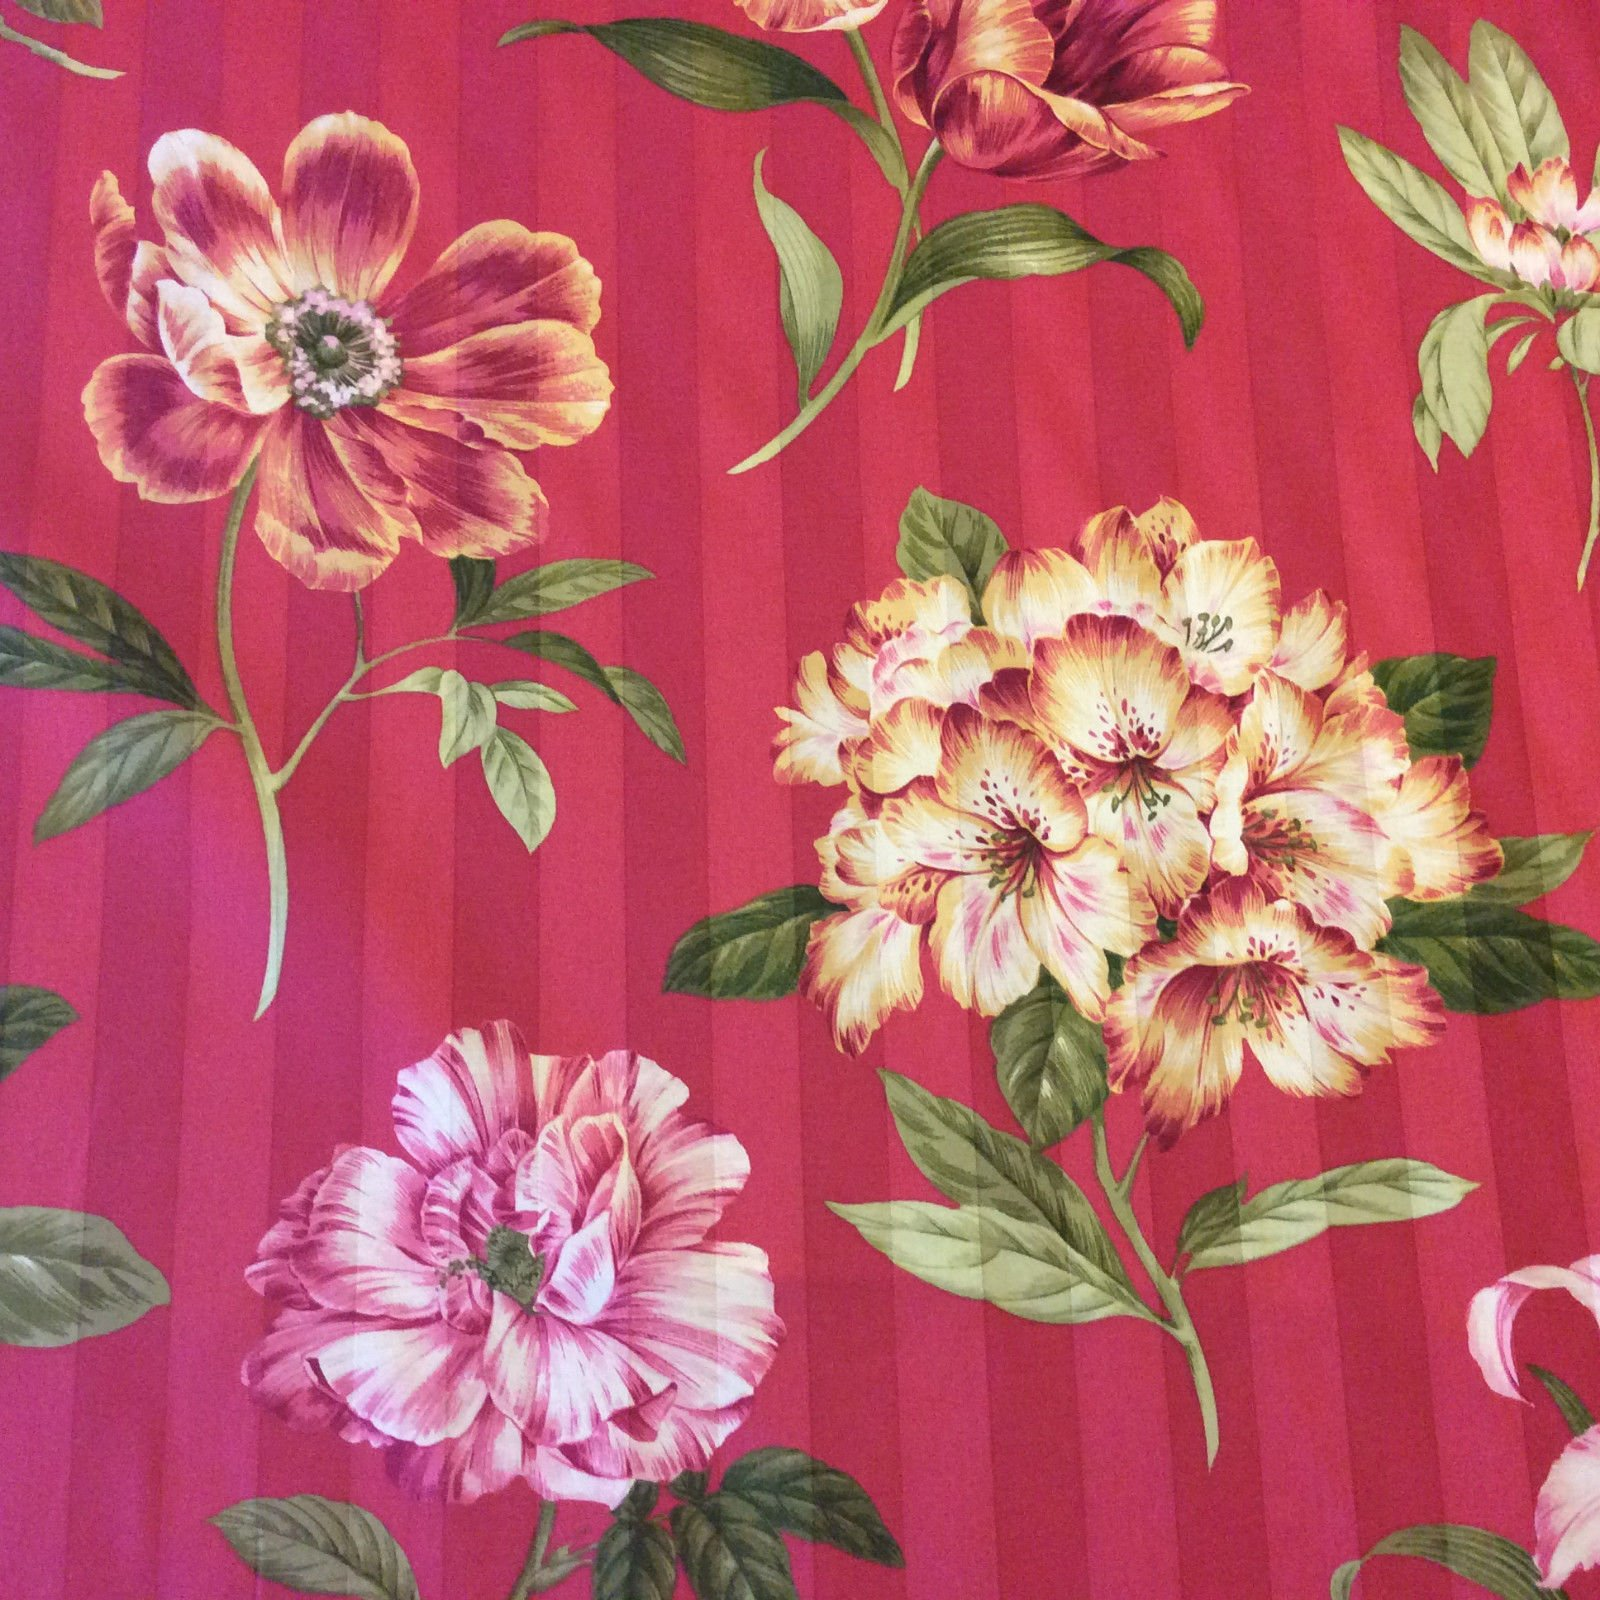 nl247 classic english floral peony dahlia bold large scale floral